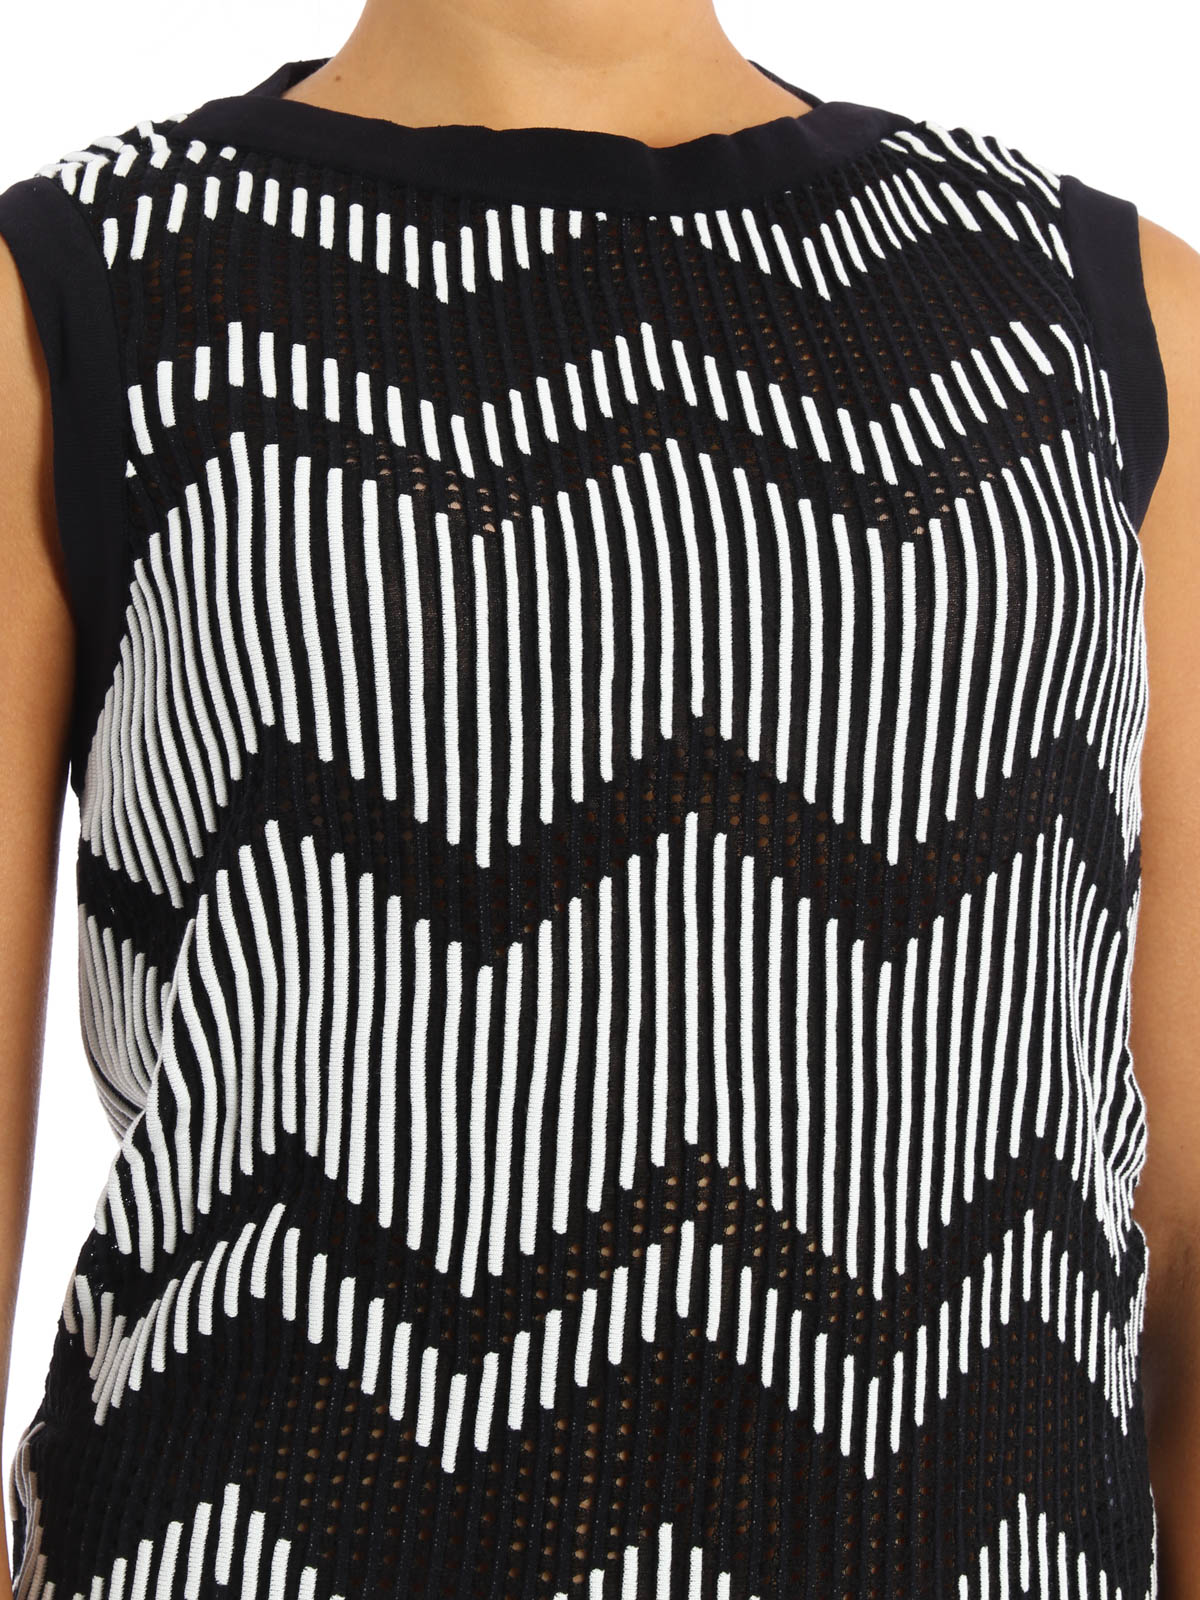 Chevron pattern knitted tank top by M Missoni - Tops & Tank tops ...